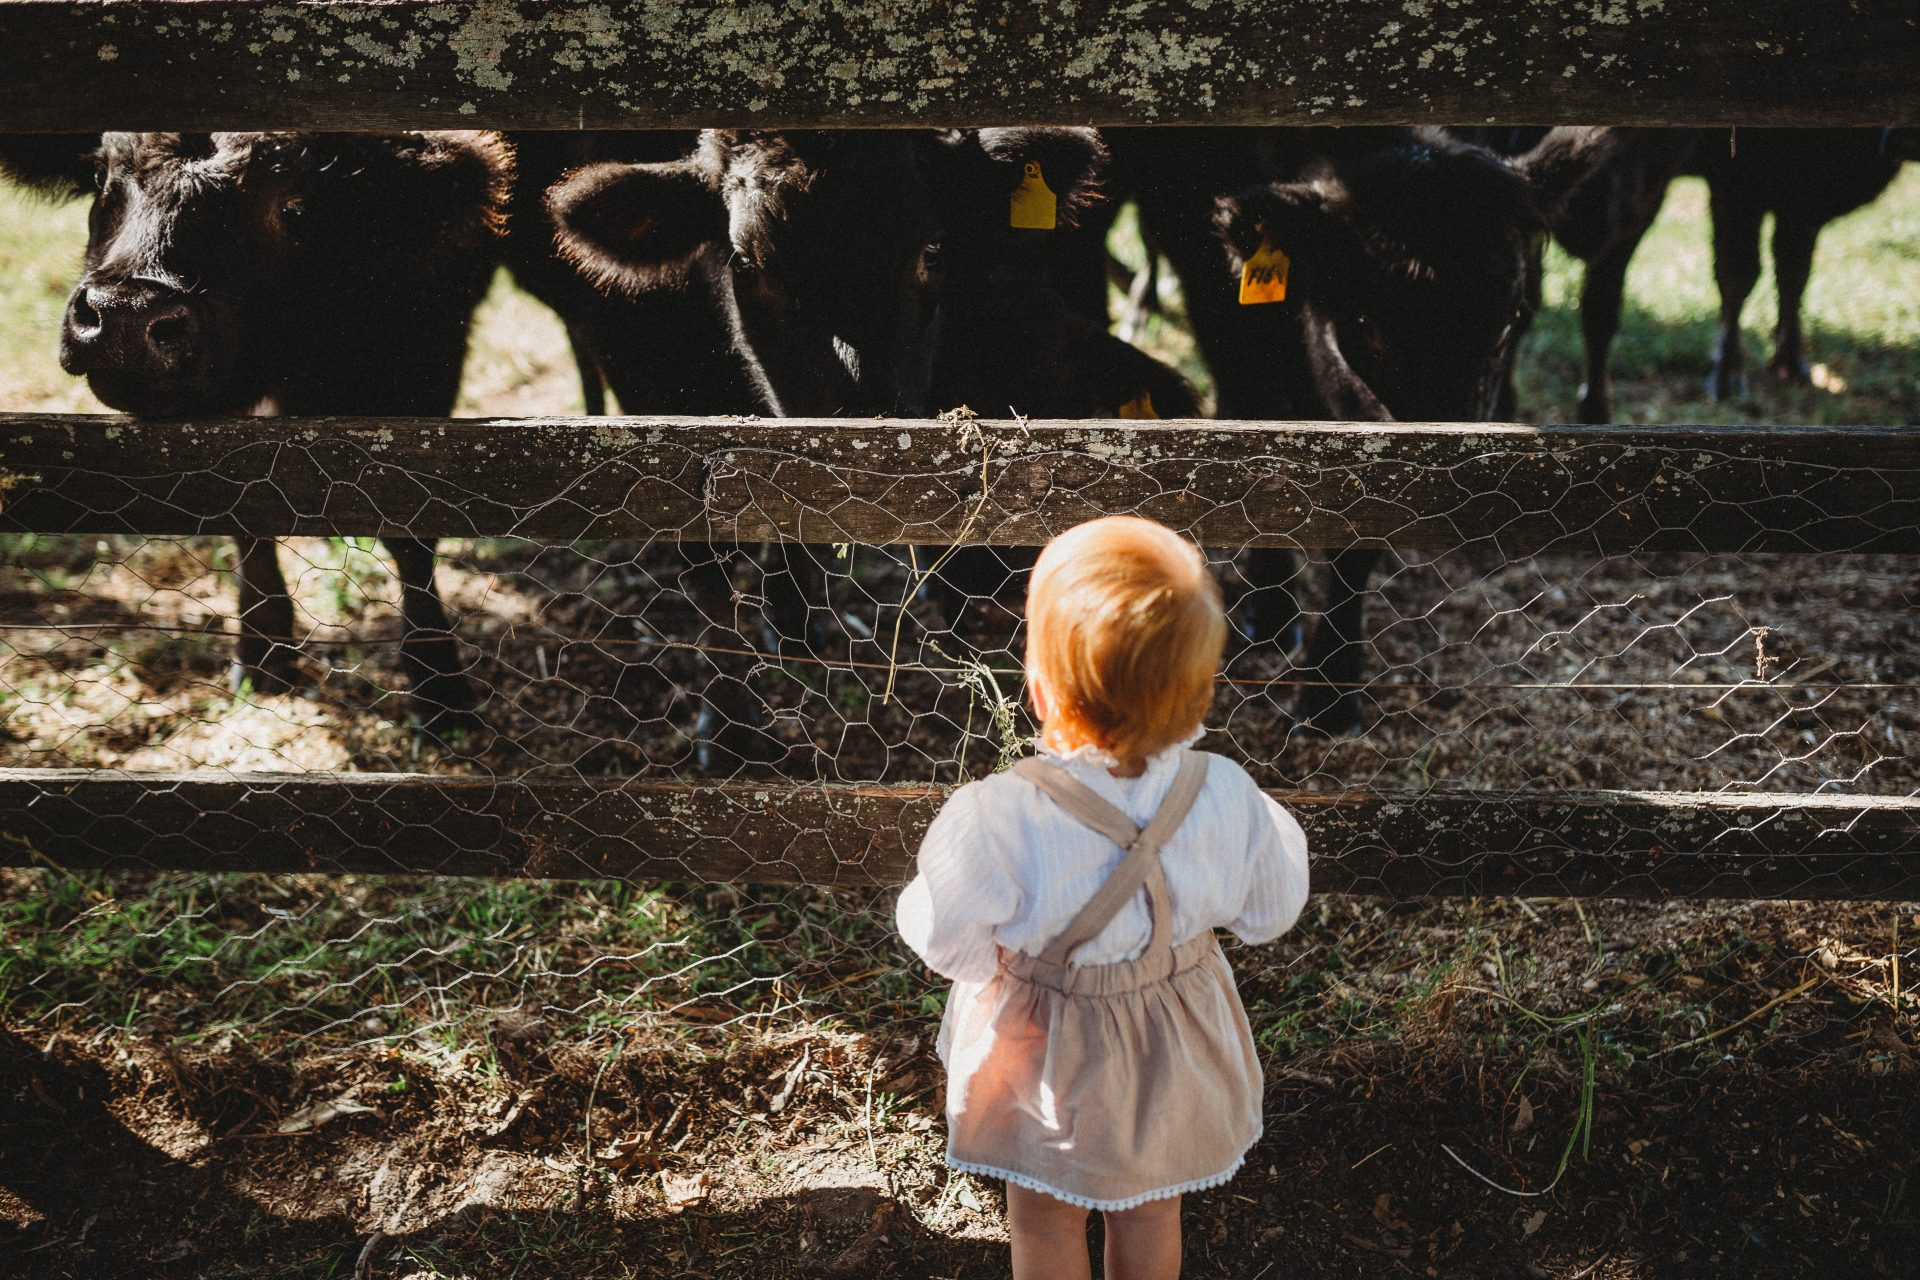 Little girl stands at fence facing group of cows